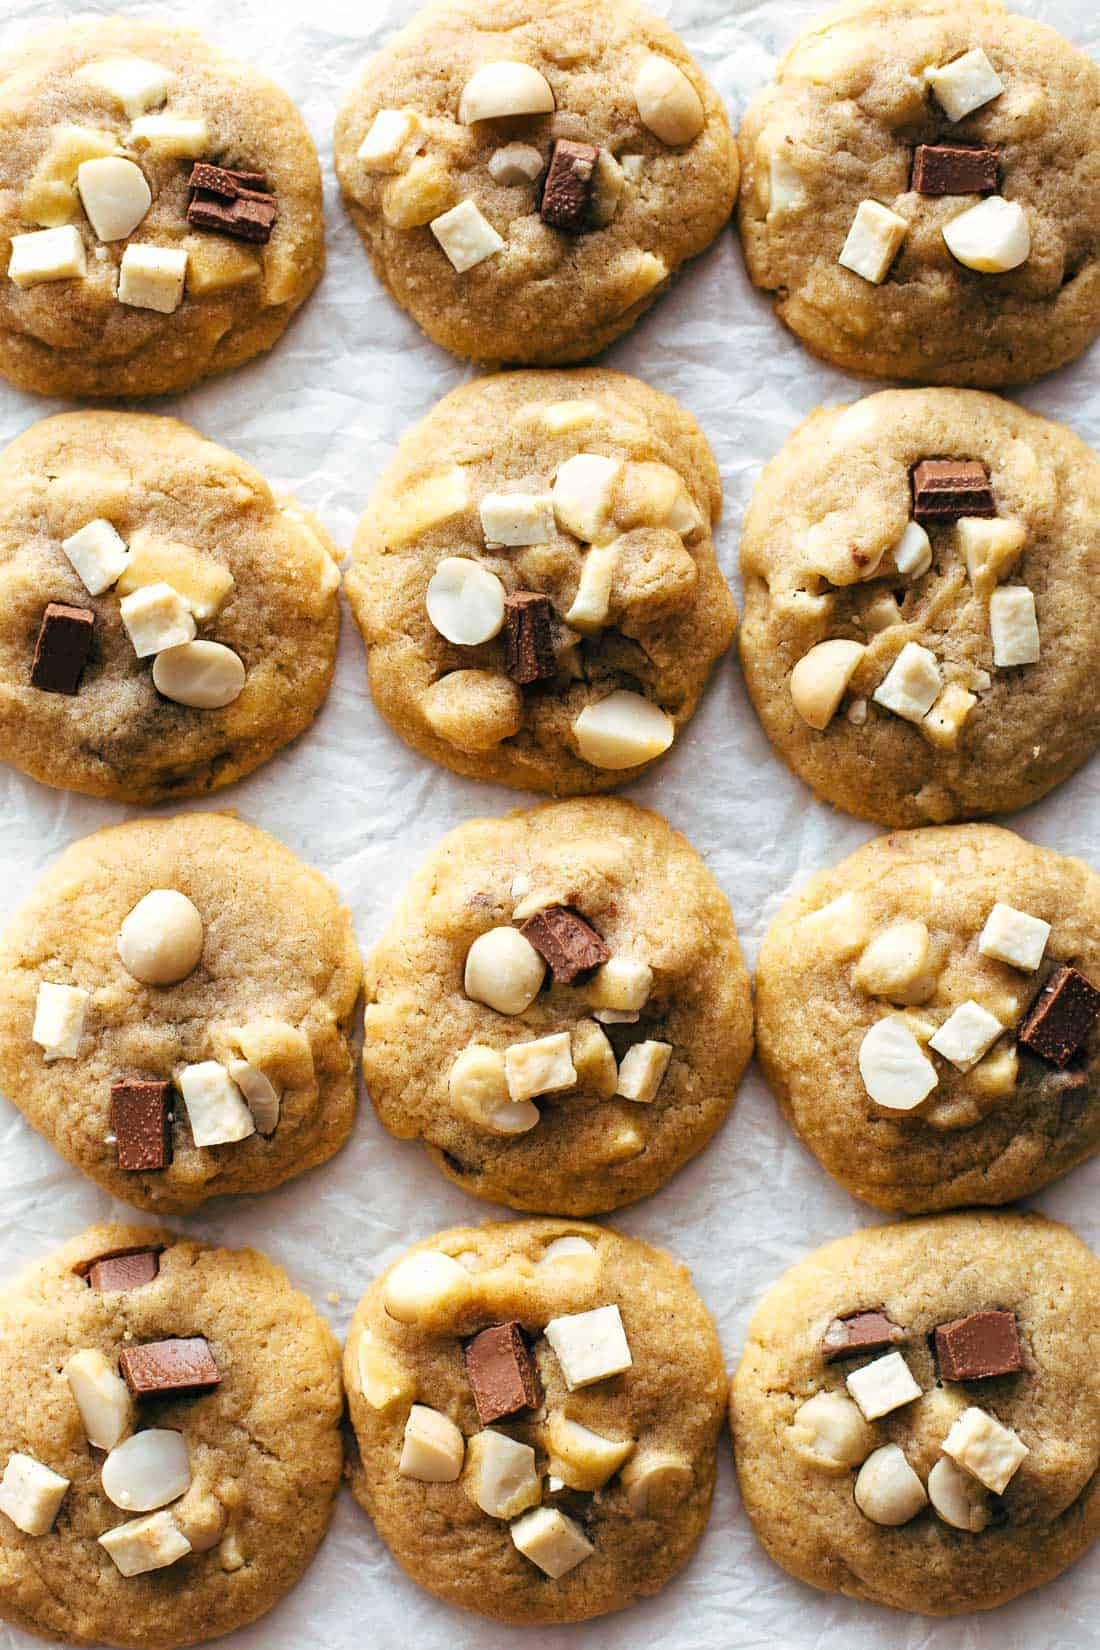 Baked Chocolate Macadamia Cookies on white paper